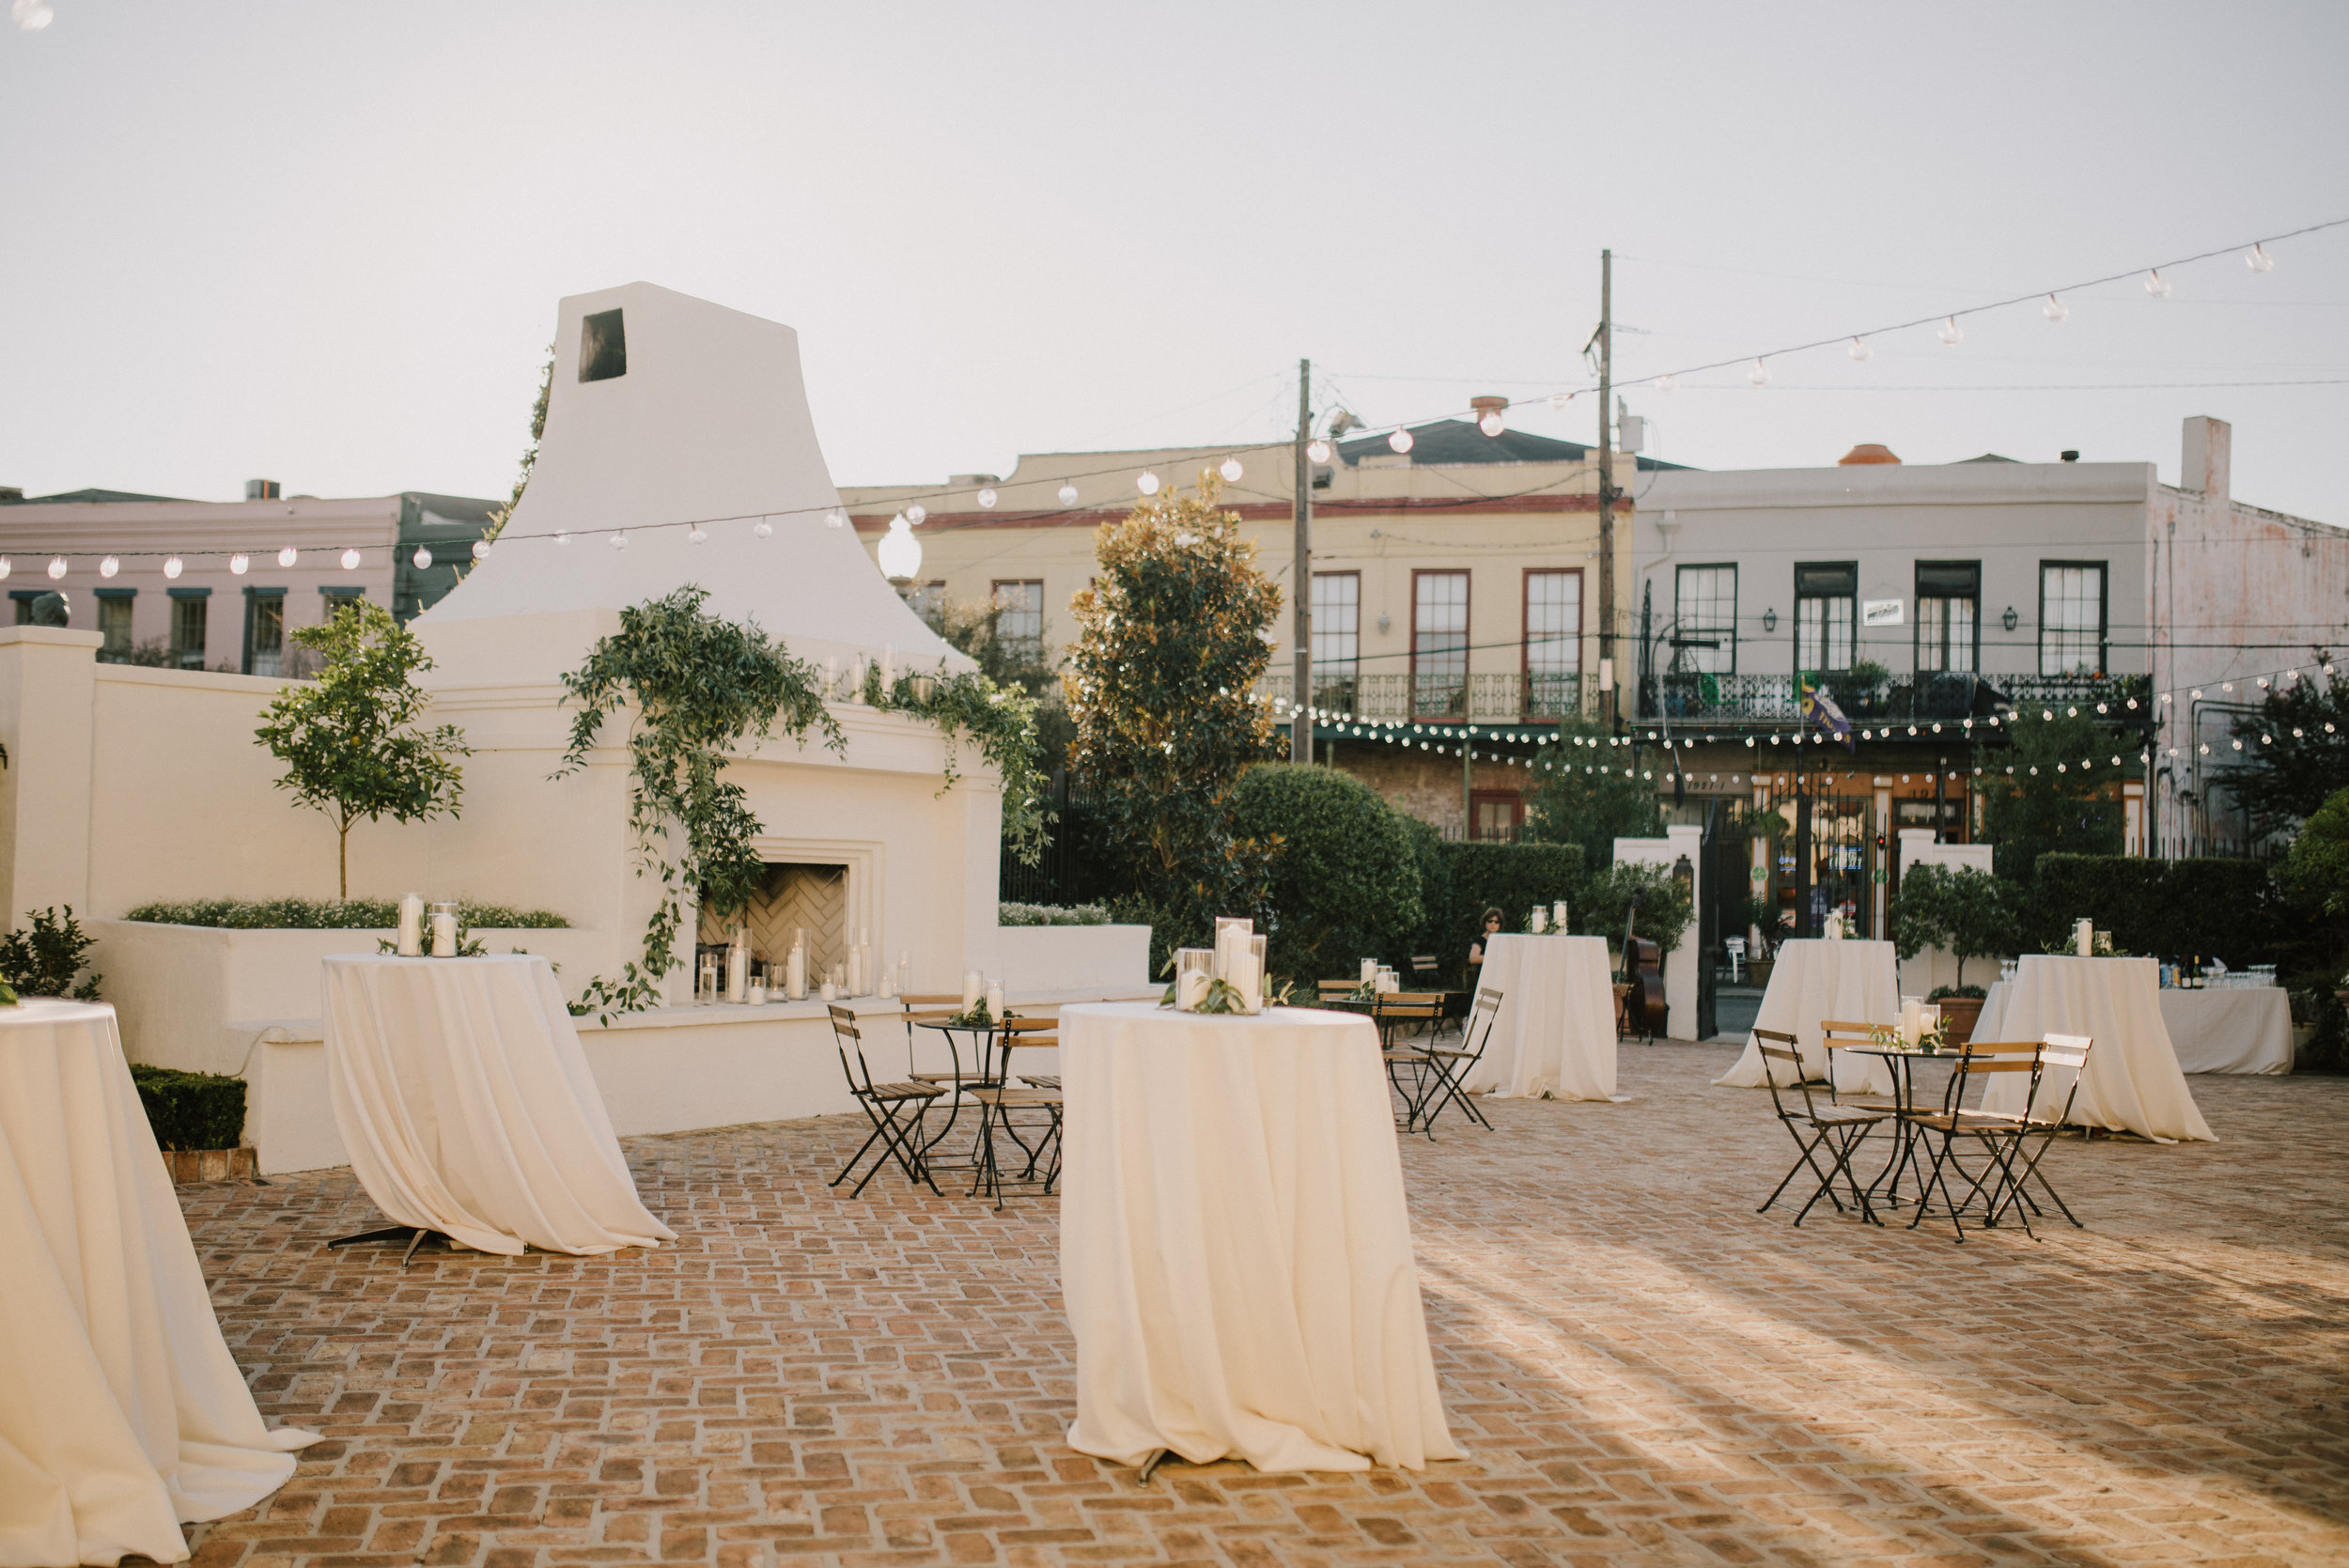 neworleans-wedding-at-il-mercado-by-078themastersinlove.JPG